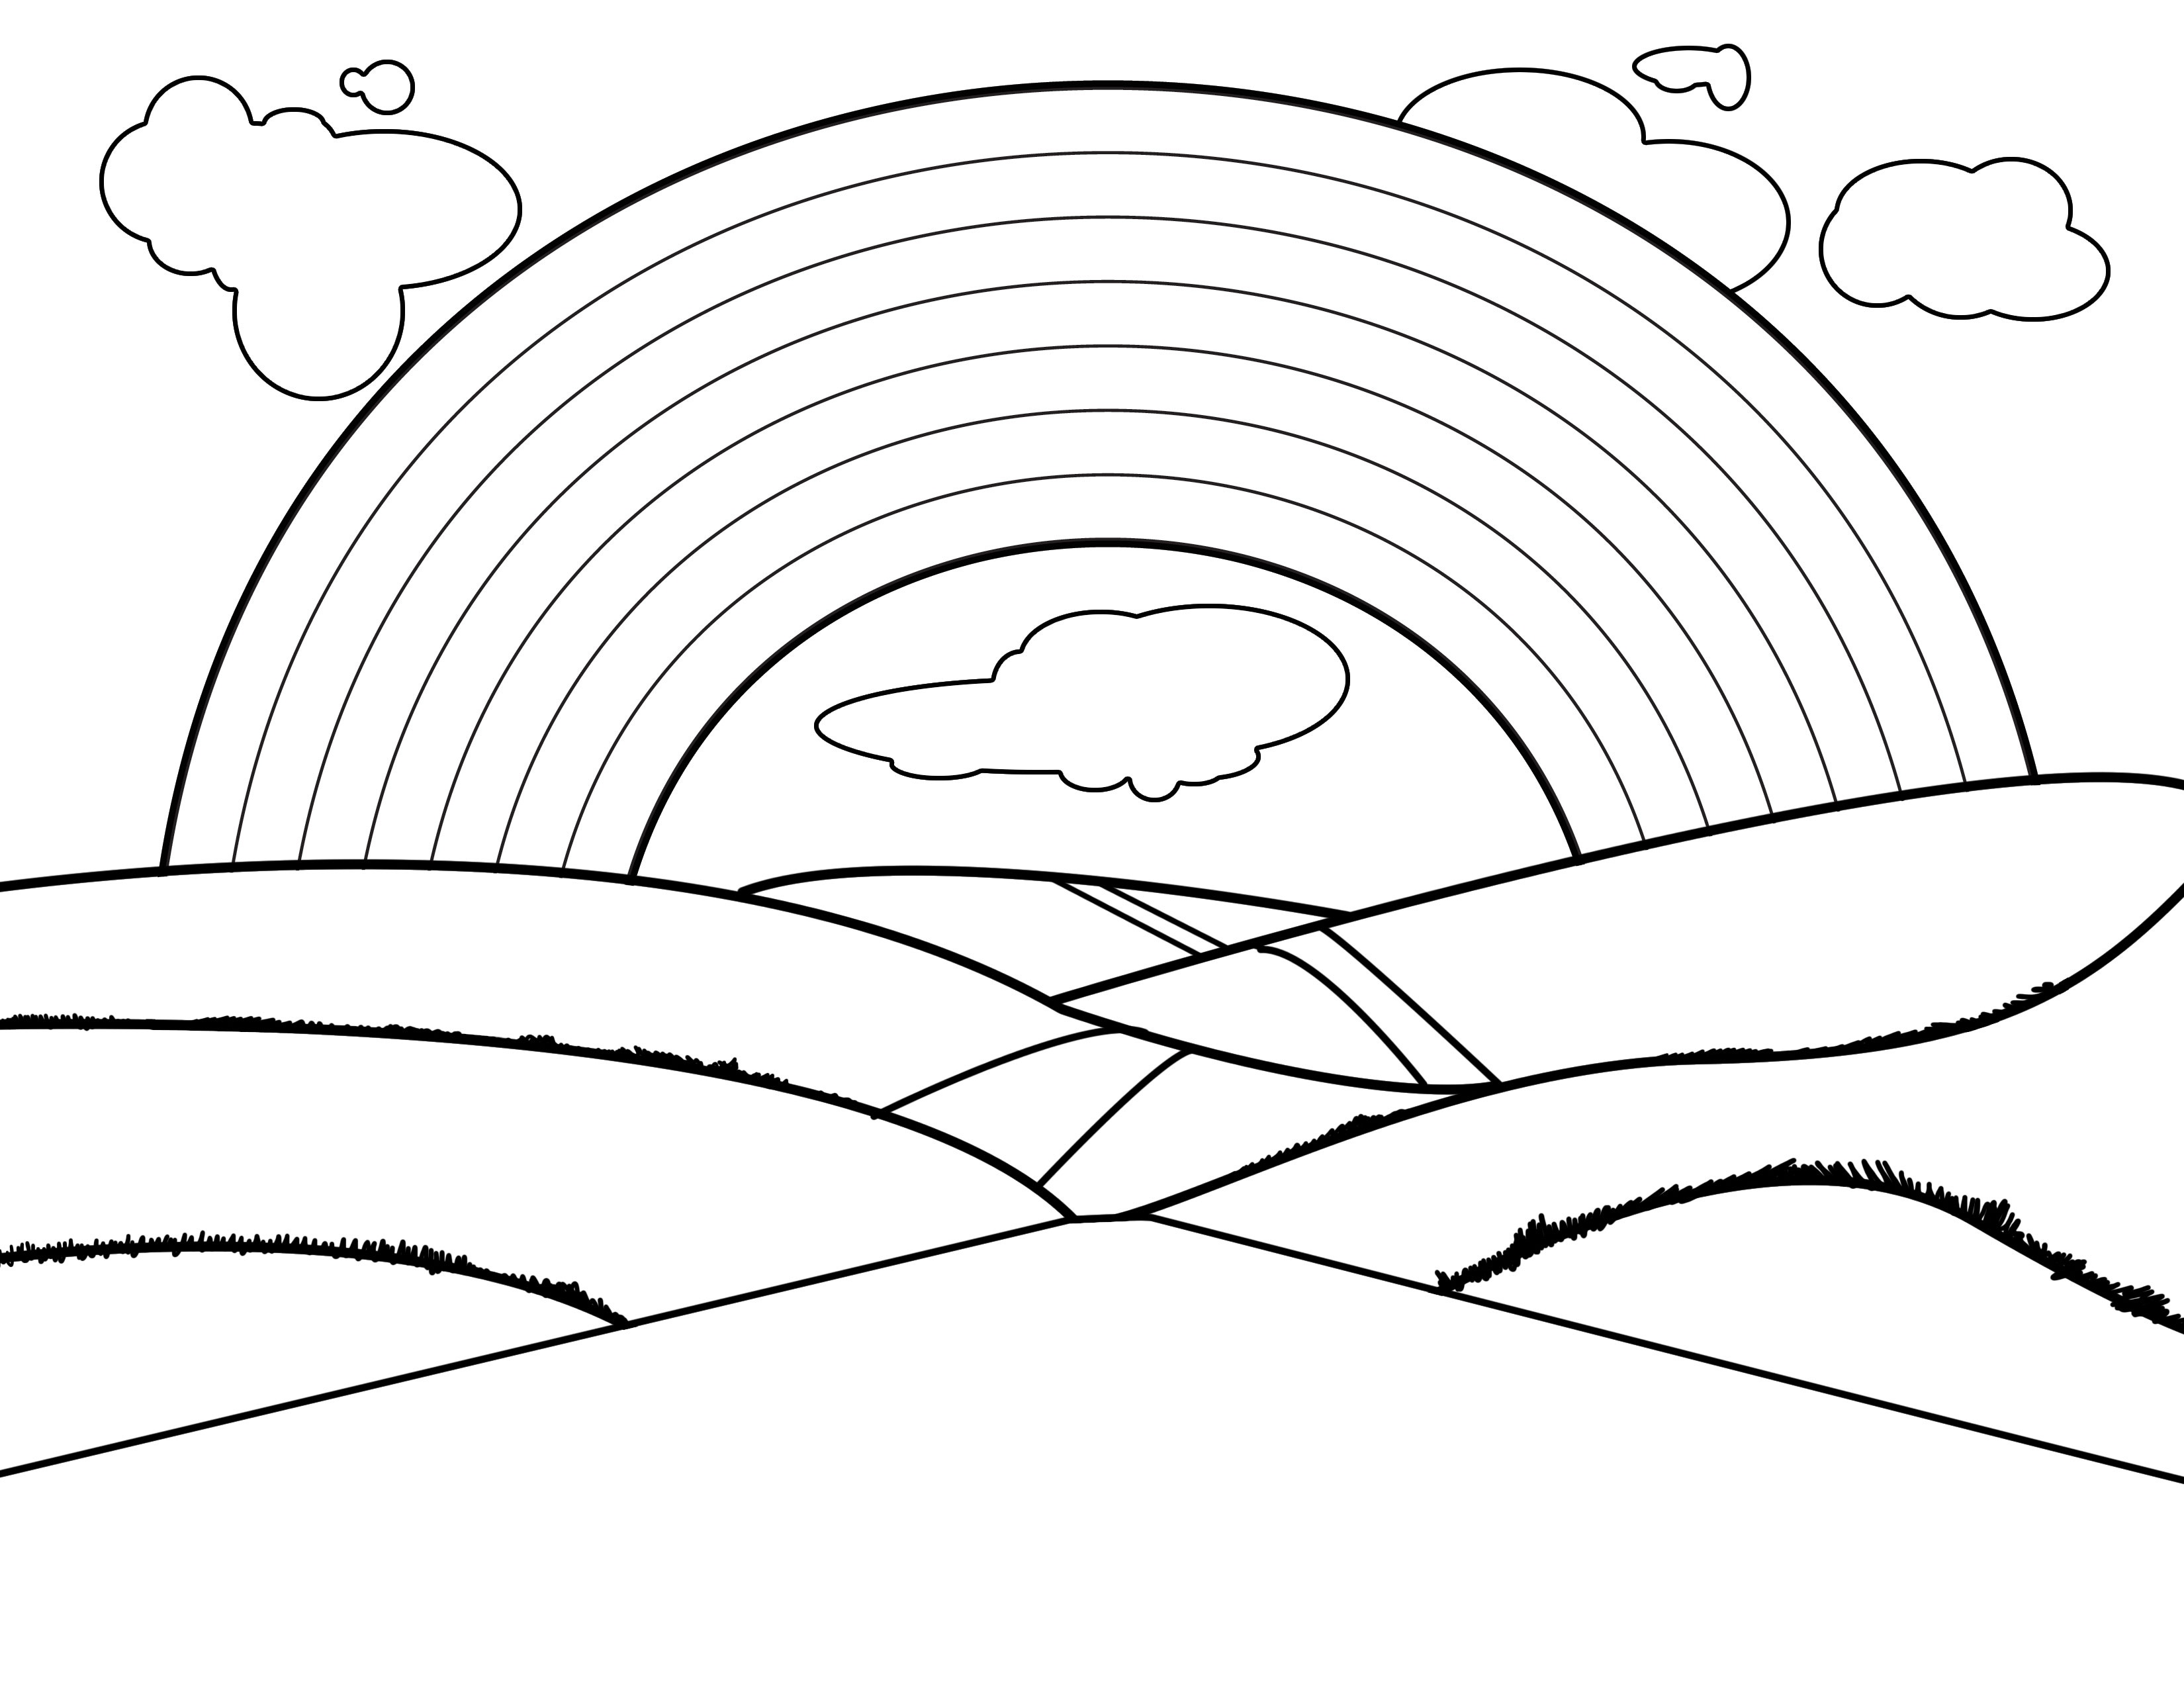 rainbow outline coloring page 4 part rainbow outline clipart best outline coloring rainbow page